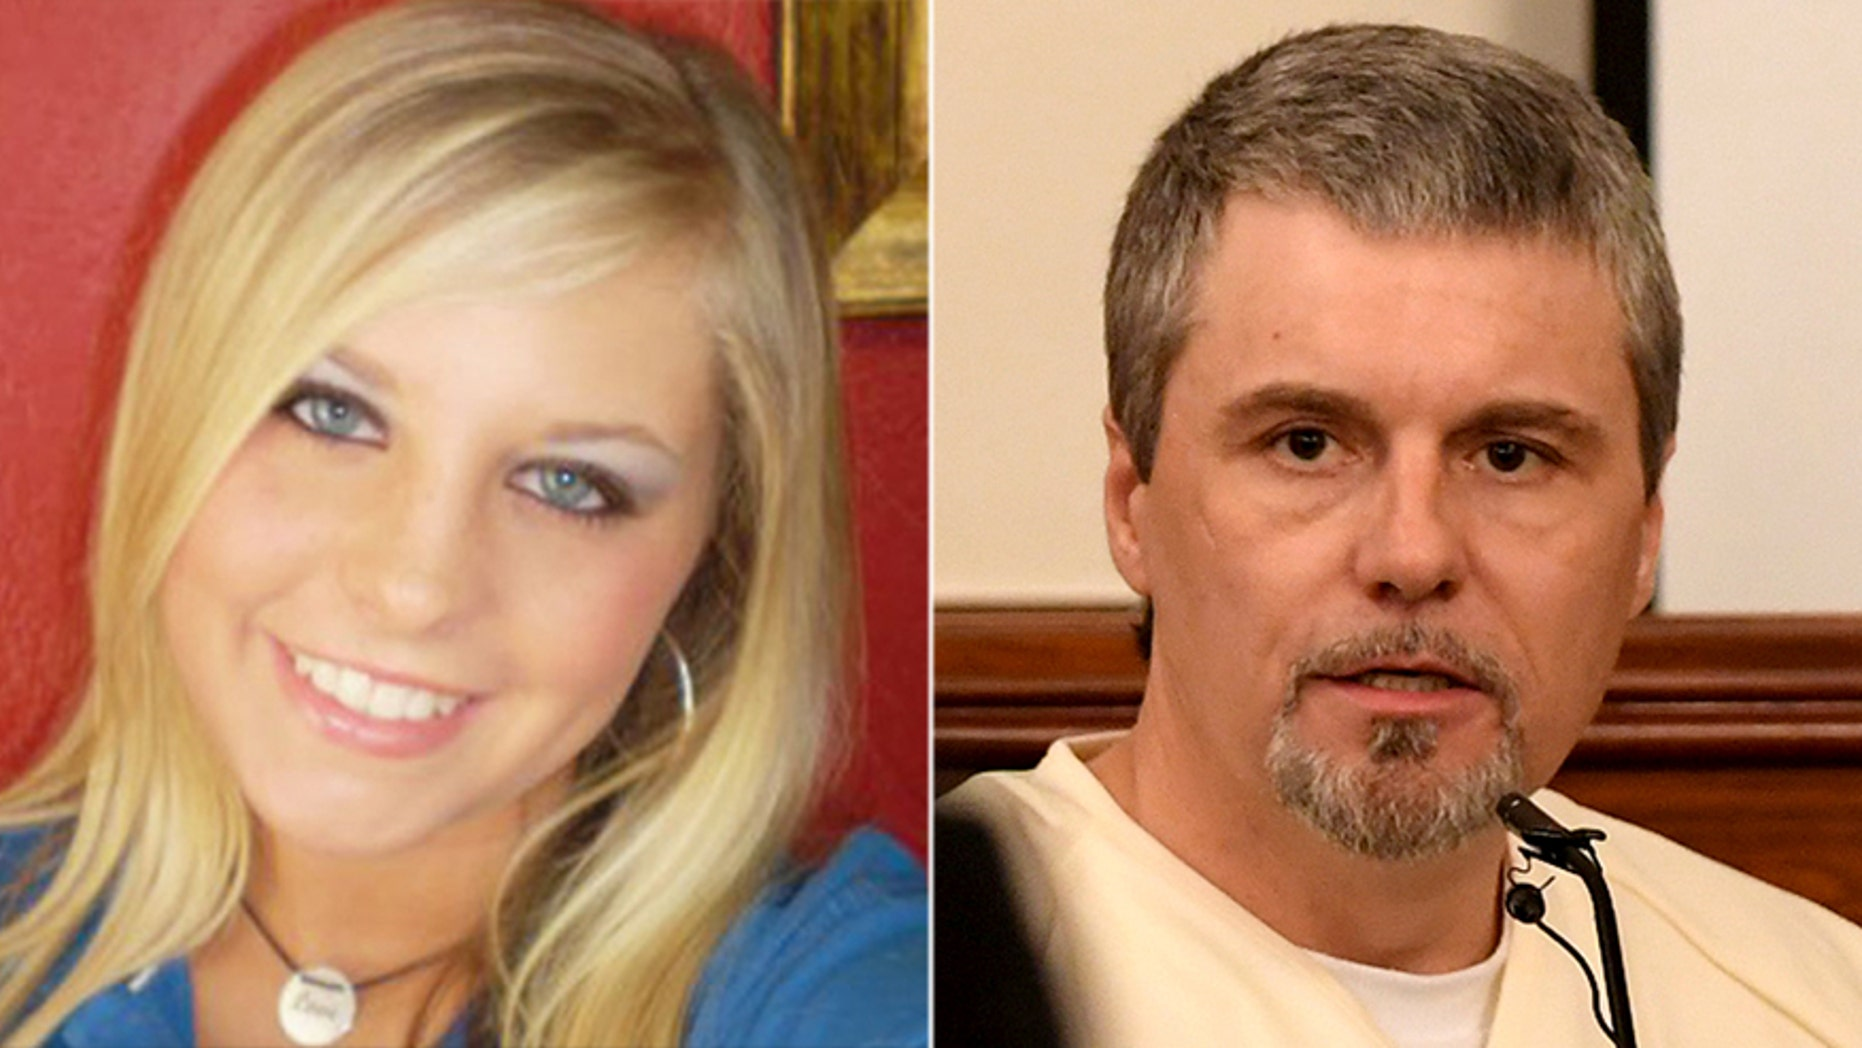 Jason Autry, right, testified about how he was asked to help dispose of the body of Holly Bobo, left, nursing student who disappeared outside her family's rural Tennessee home on April 13, 2011.